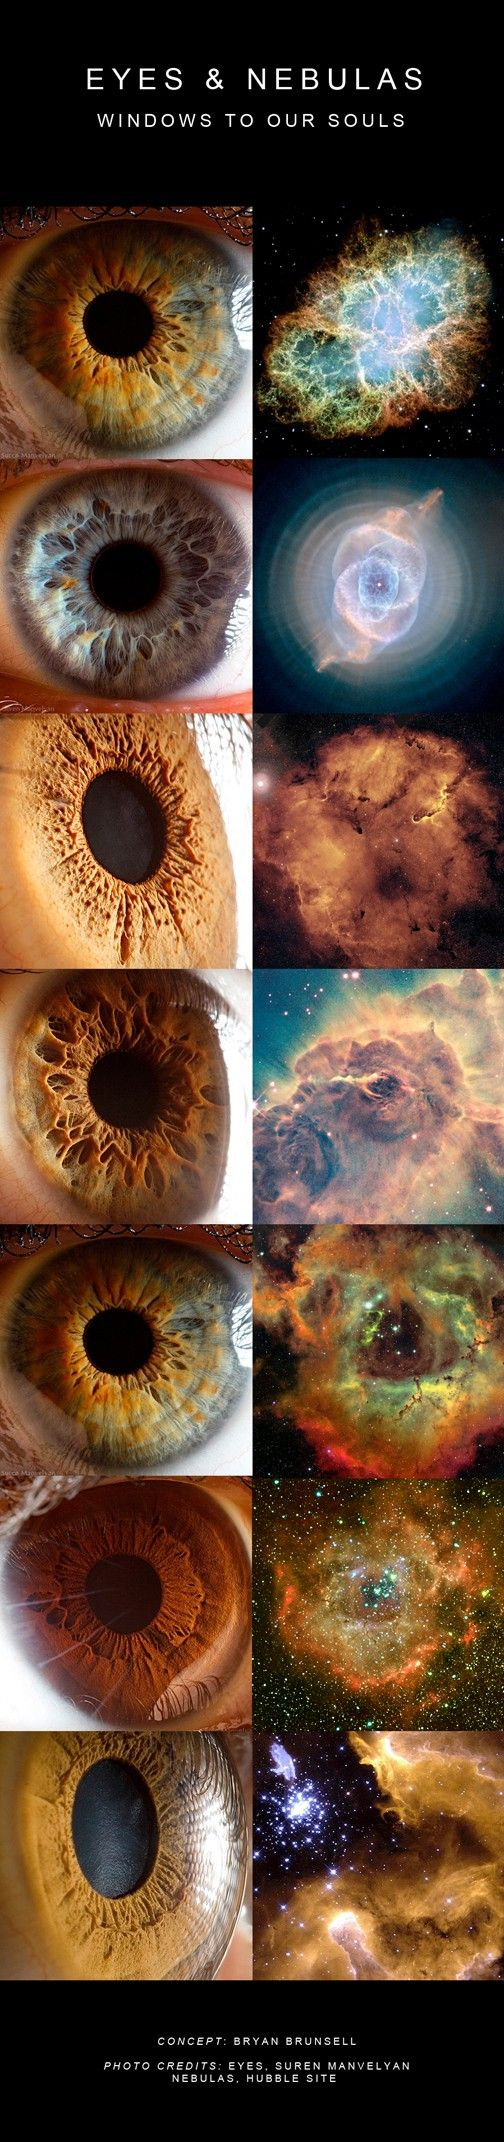 eyes and nebulas. I think its amazing to see the familiarities between animals and nature and the universe...  Like fractals for example. How can you not believe that everything in connected?